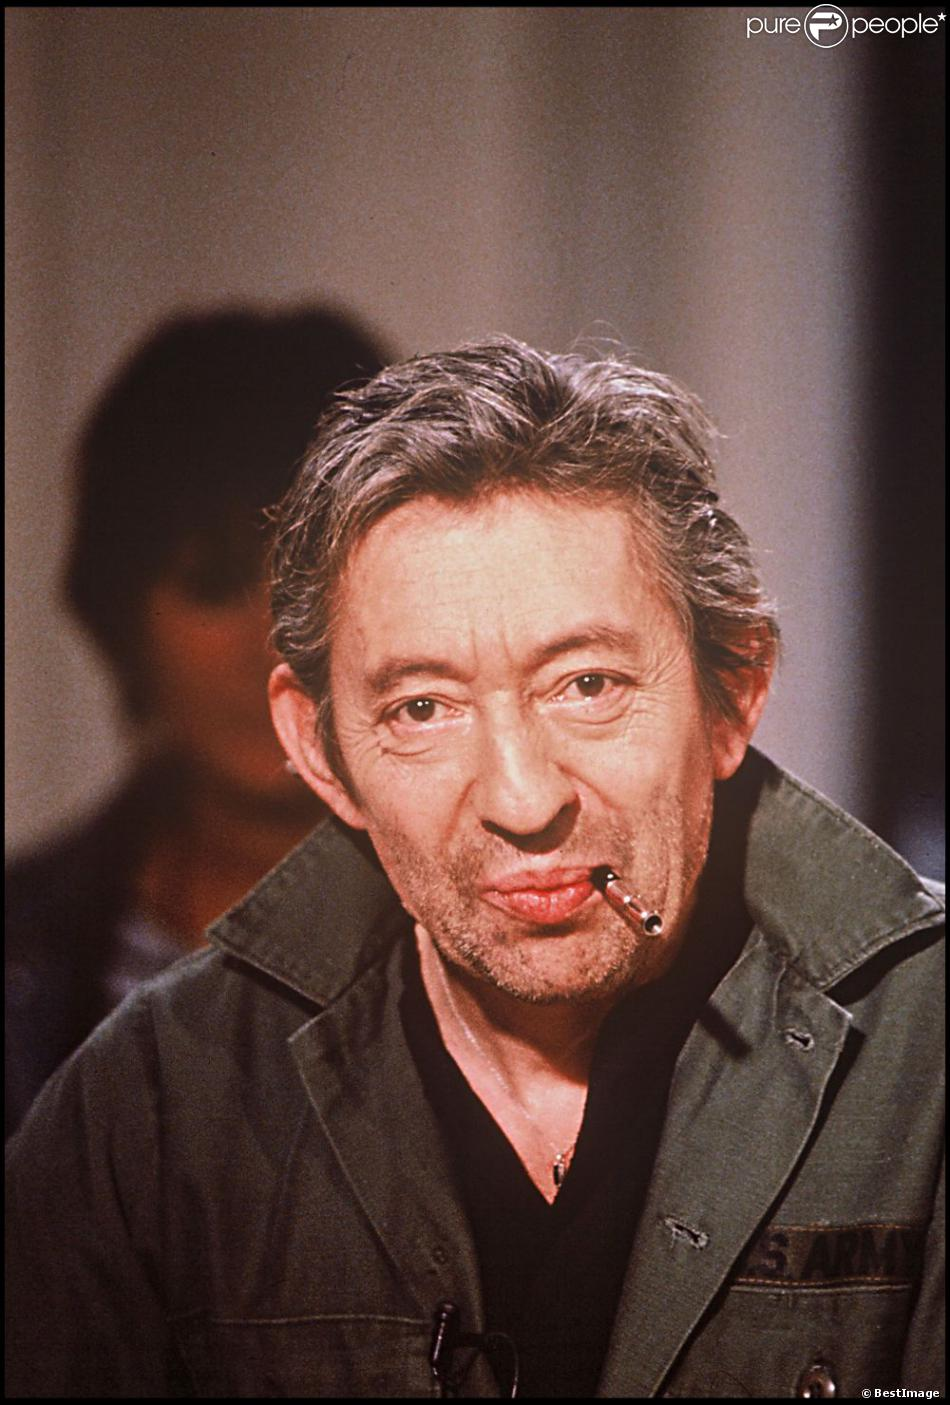 serge gainsbourg 60 000 euros pour ses souvenirs purepeople. Black Bedroom Furniture Sets. Home Design Ideas